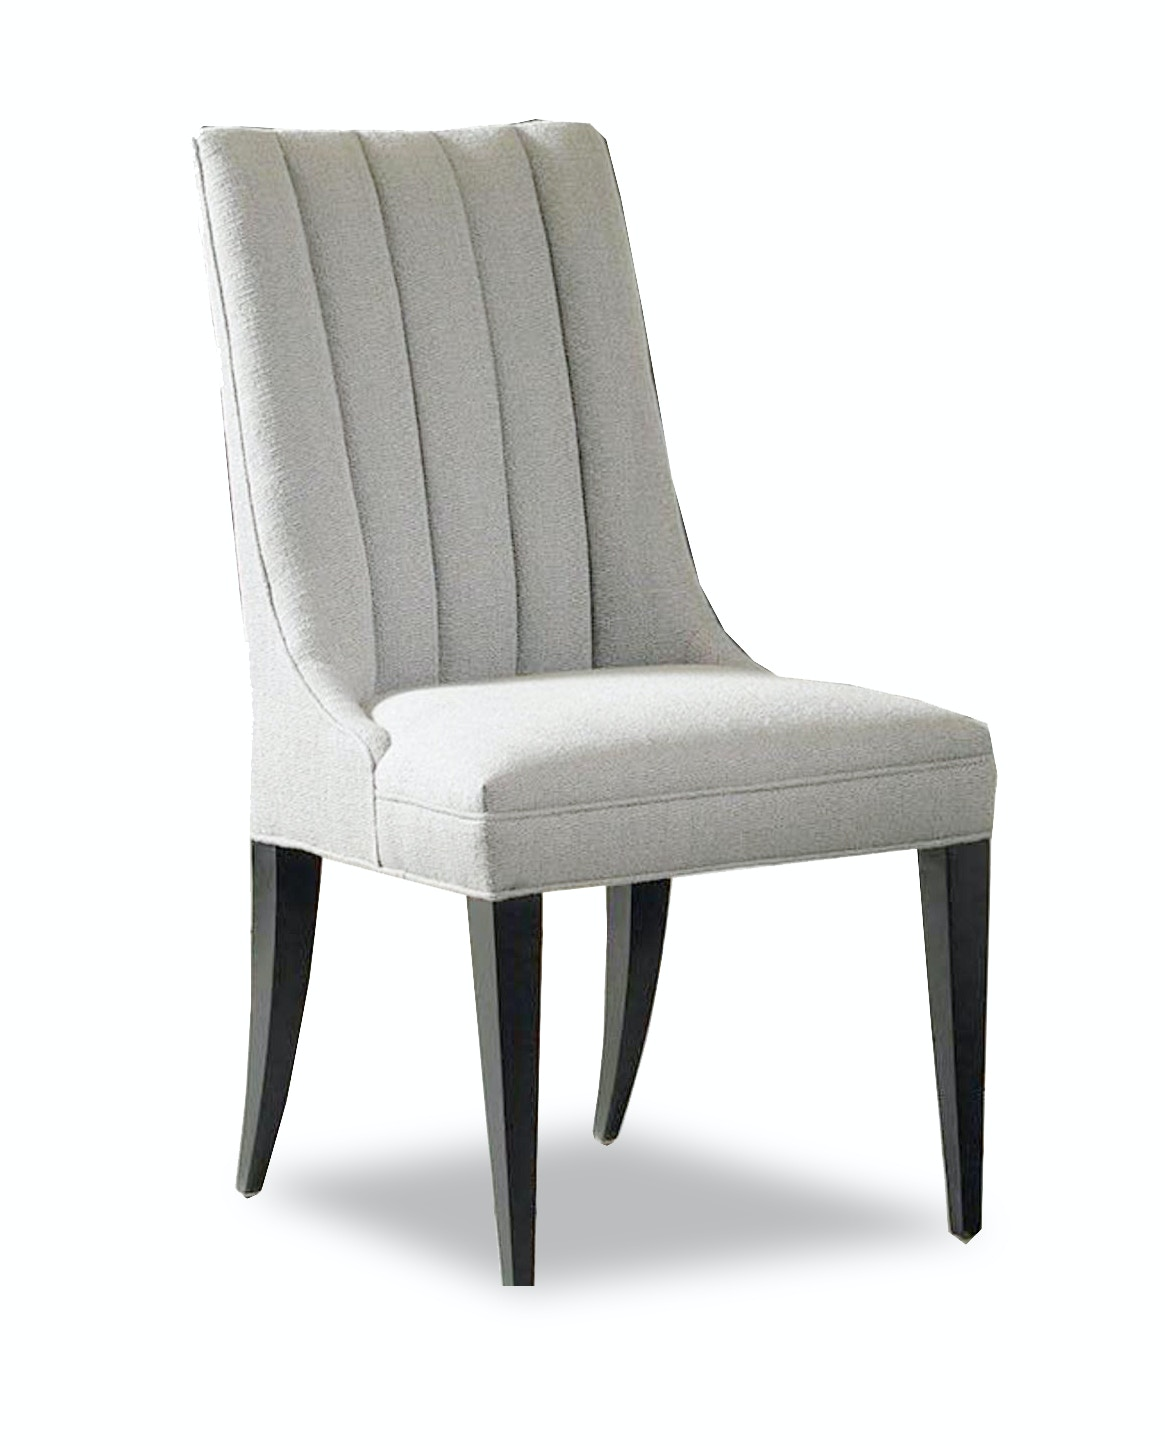 Paragon Furniture CUSTOM DESIGNED DINING CHAIR YPD1DQXU From Walter E.  Smithe Furniture + Design